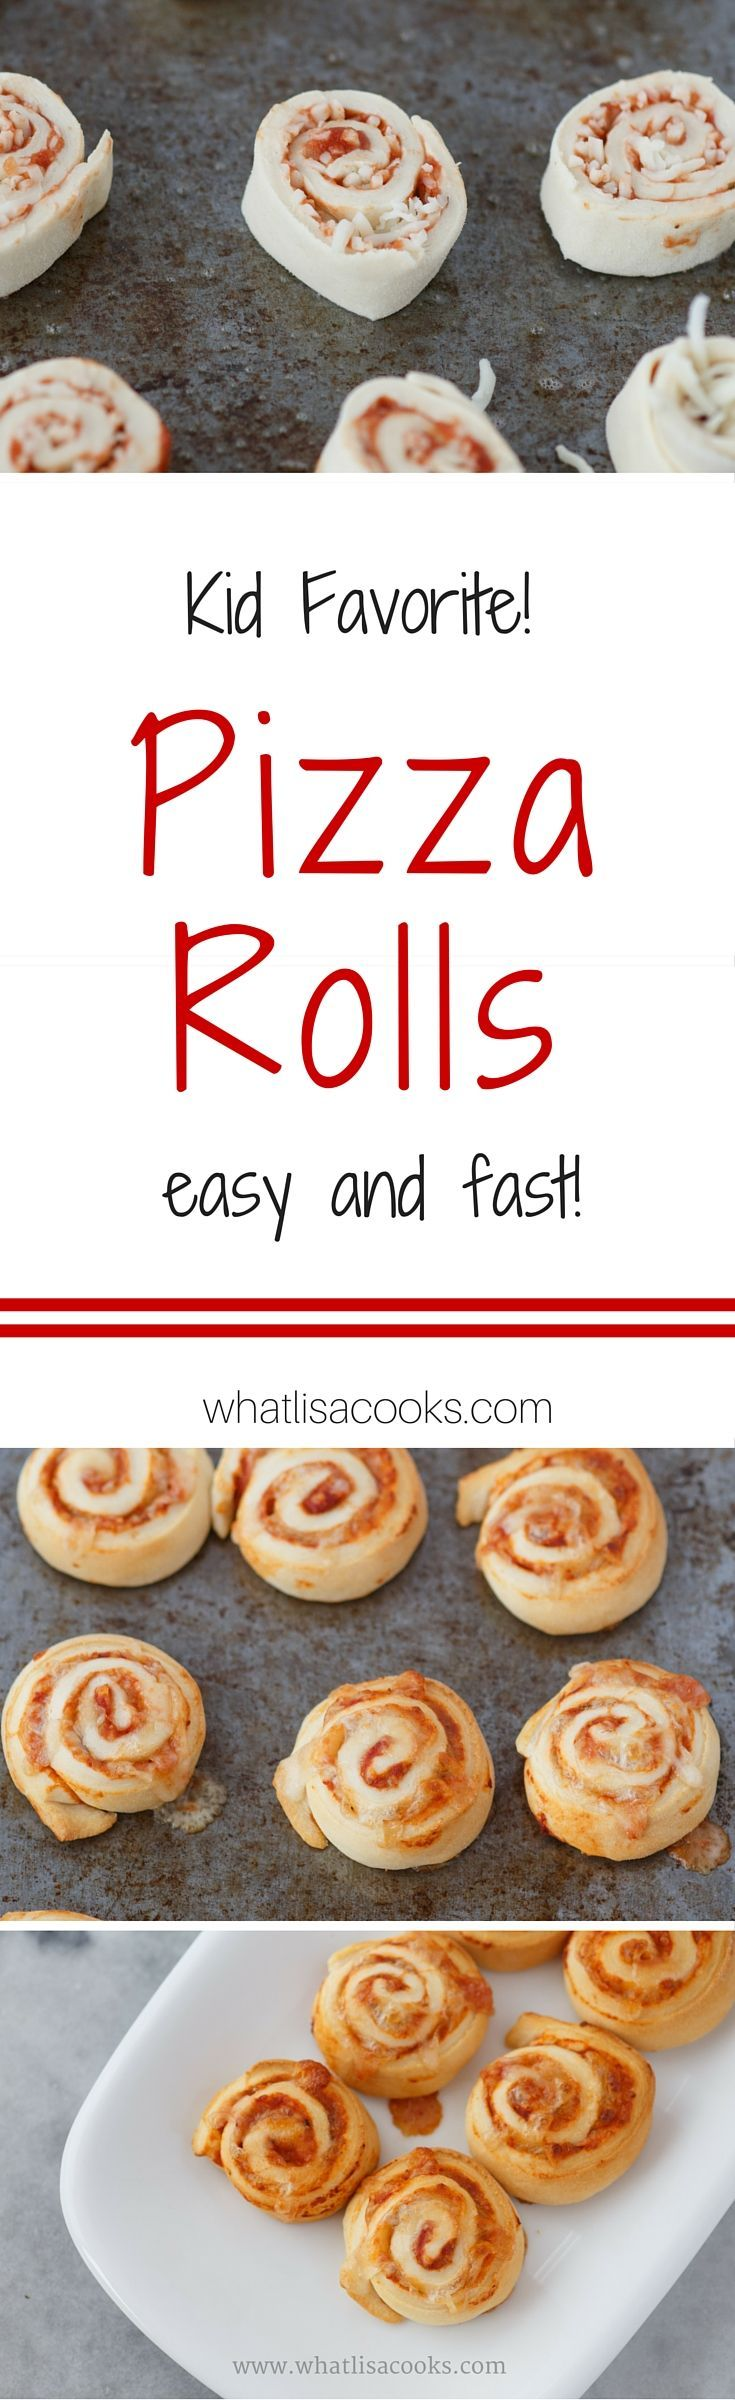 Pizza Rolls - So Easy!